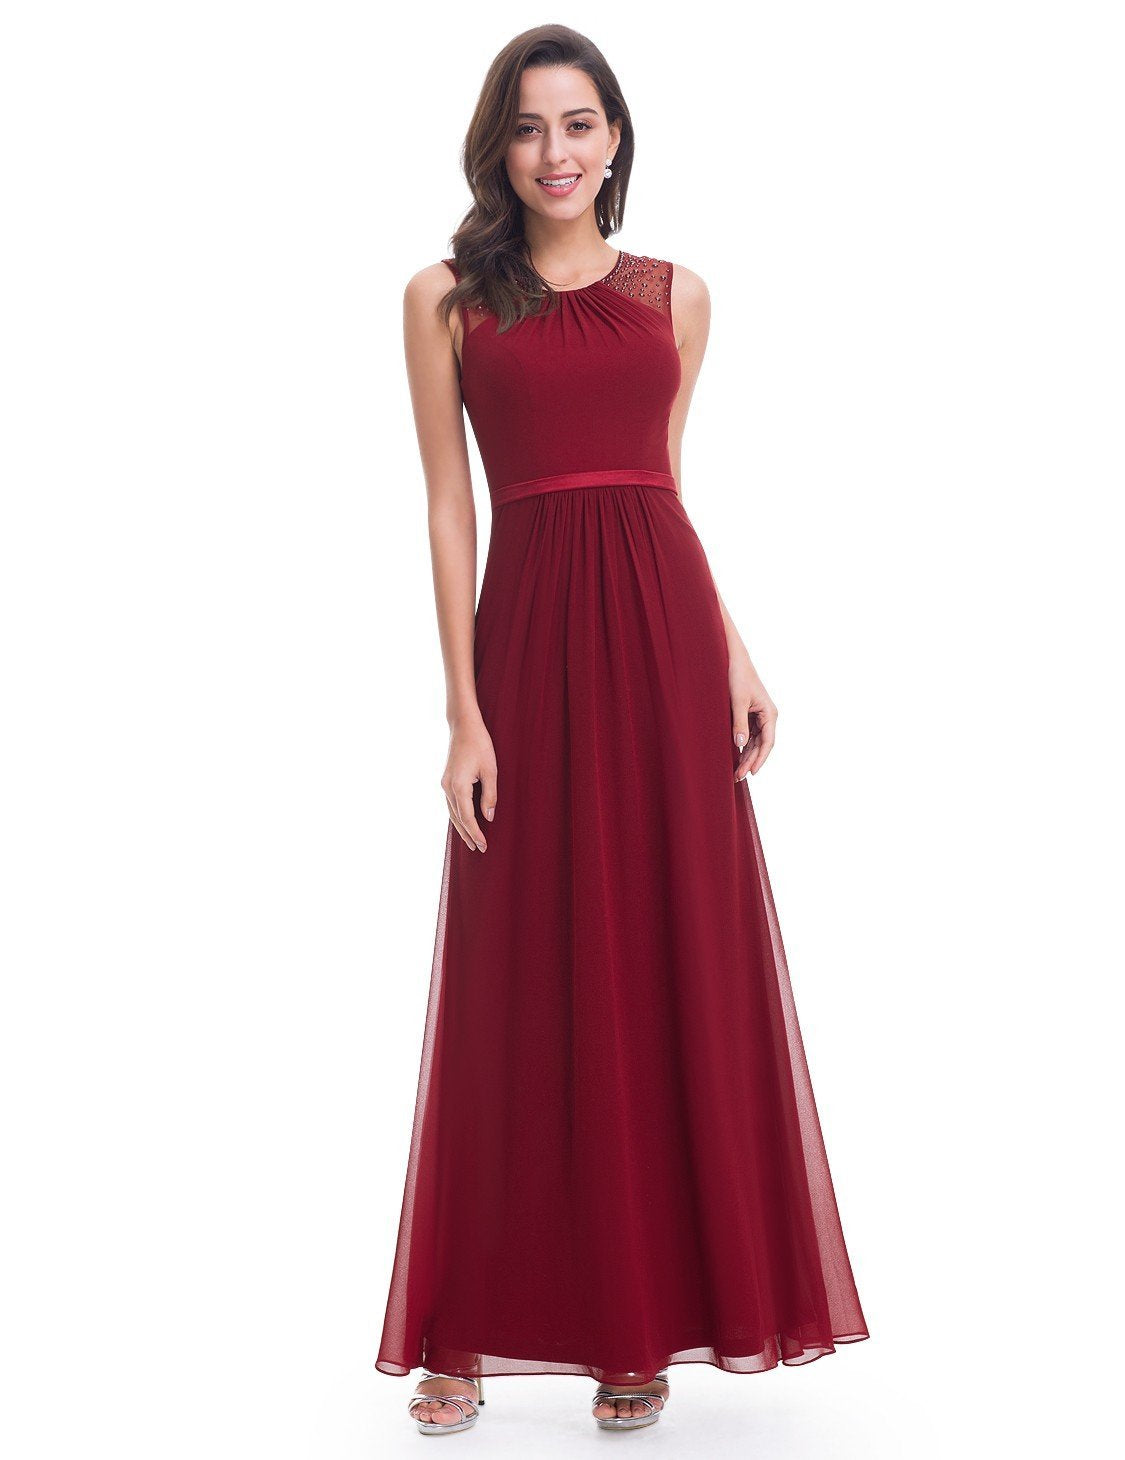 Women's Elegant Sleeveless Long Dress